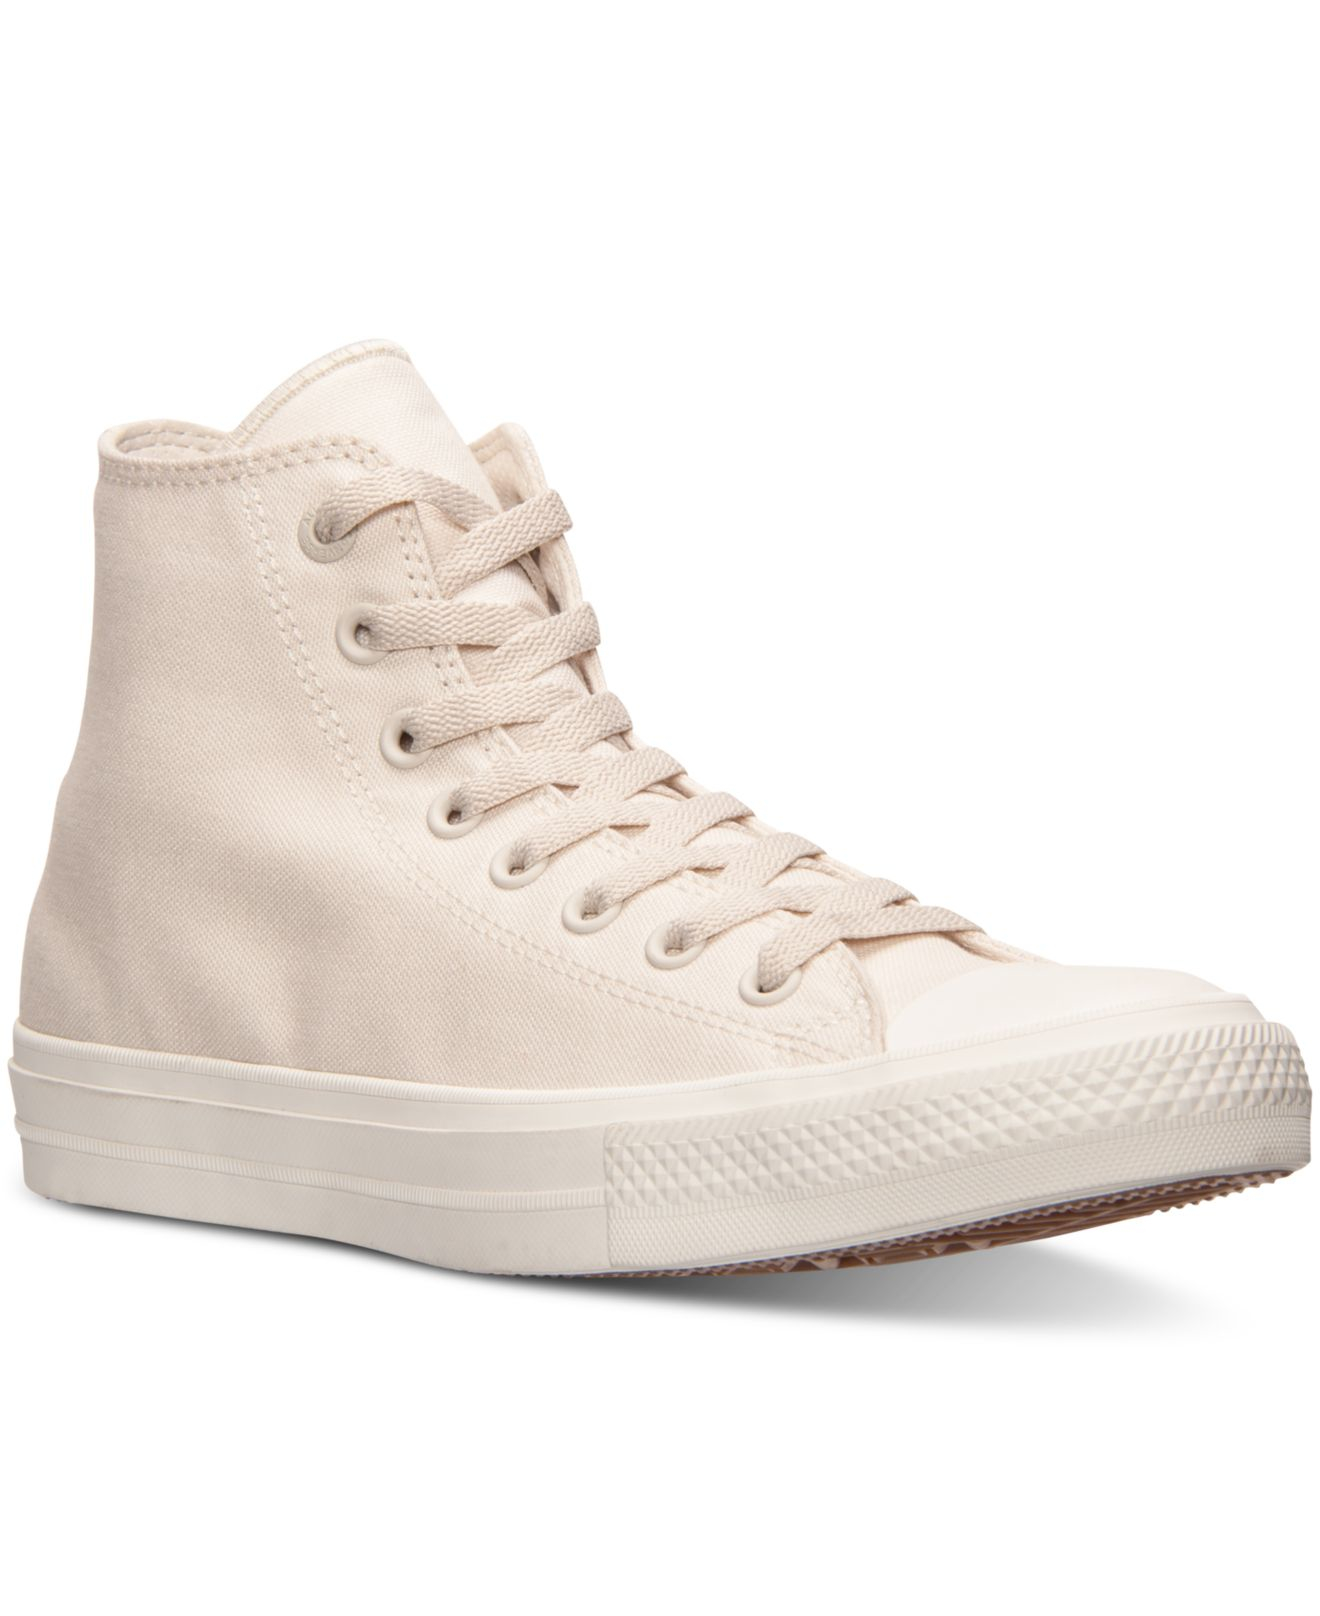 62092048c0f8 Lyst - Converse Men s Chuck Taylor All Star Ii Hi Mono Casual ...